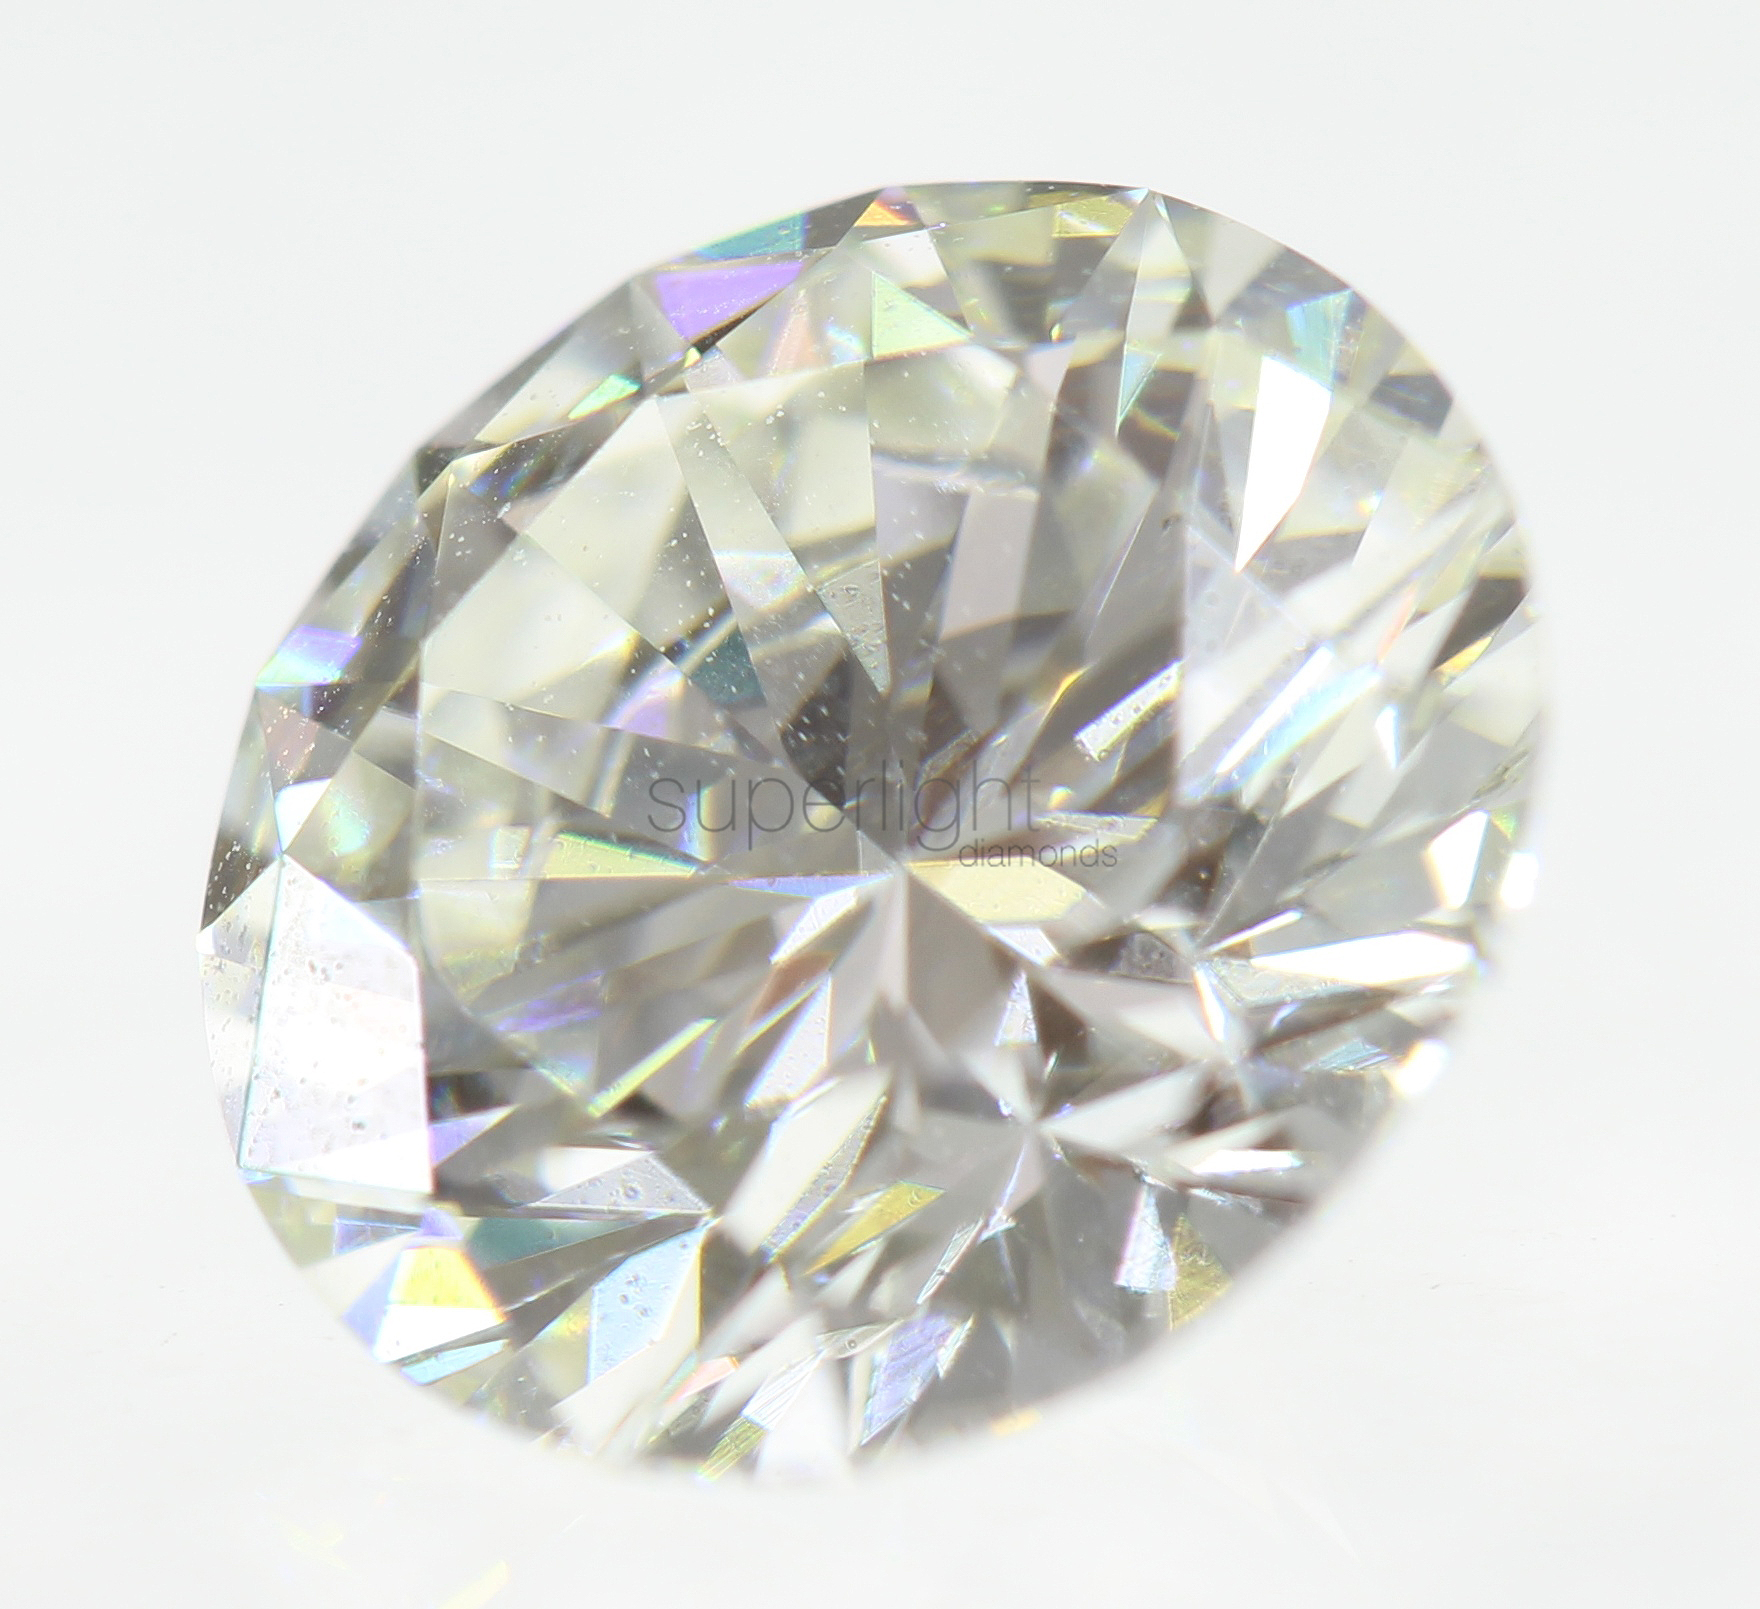 GIA Cert 1 04 Carat J Color VS2 Round Brilliant Loose